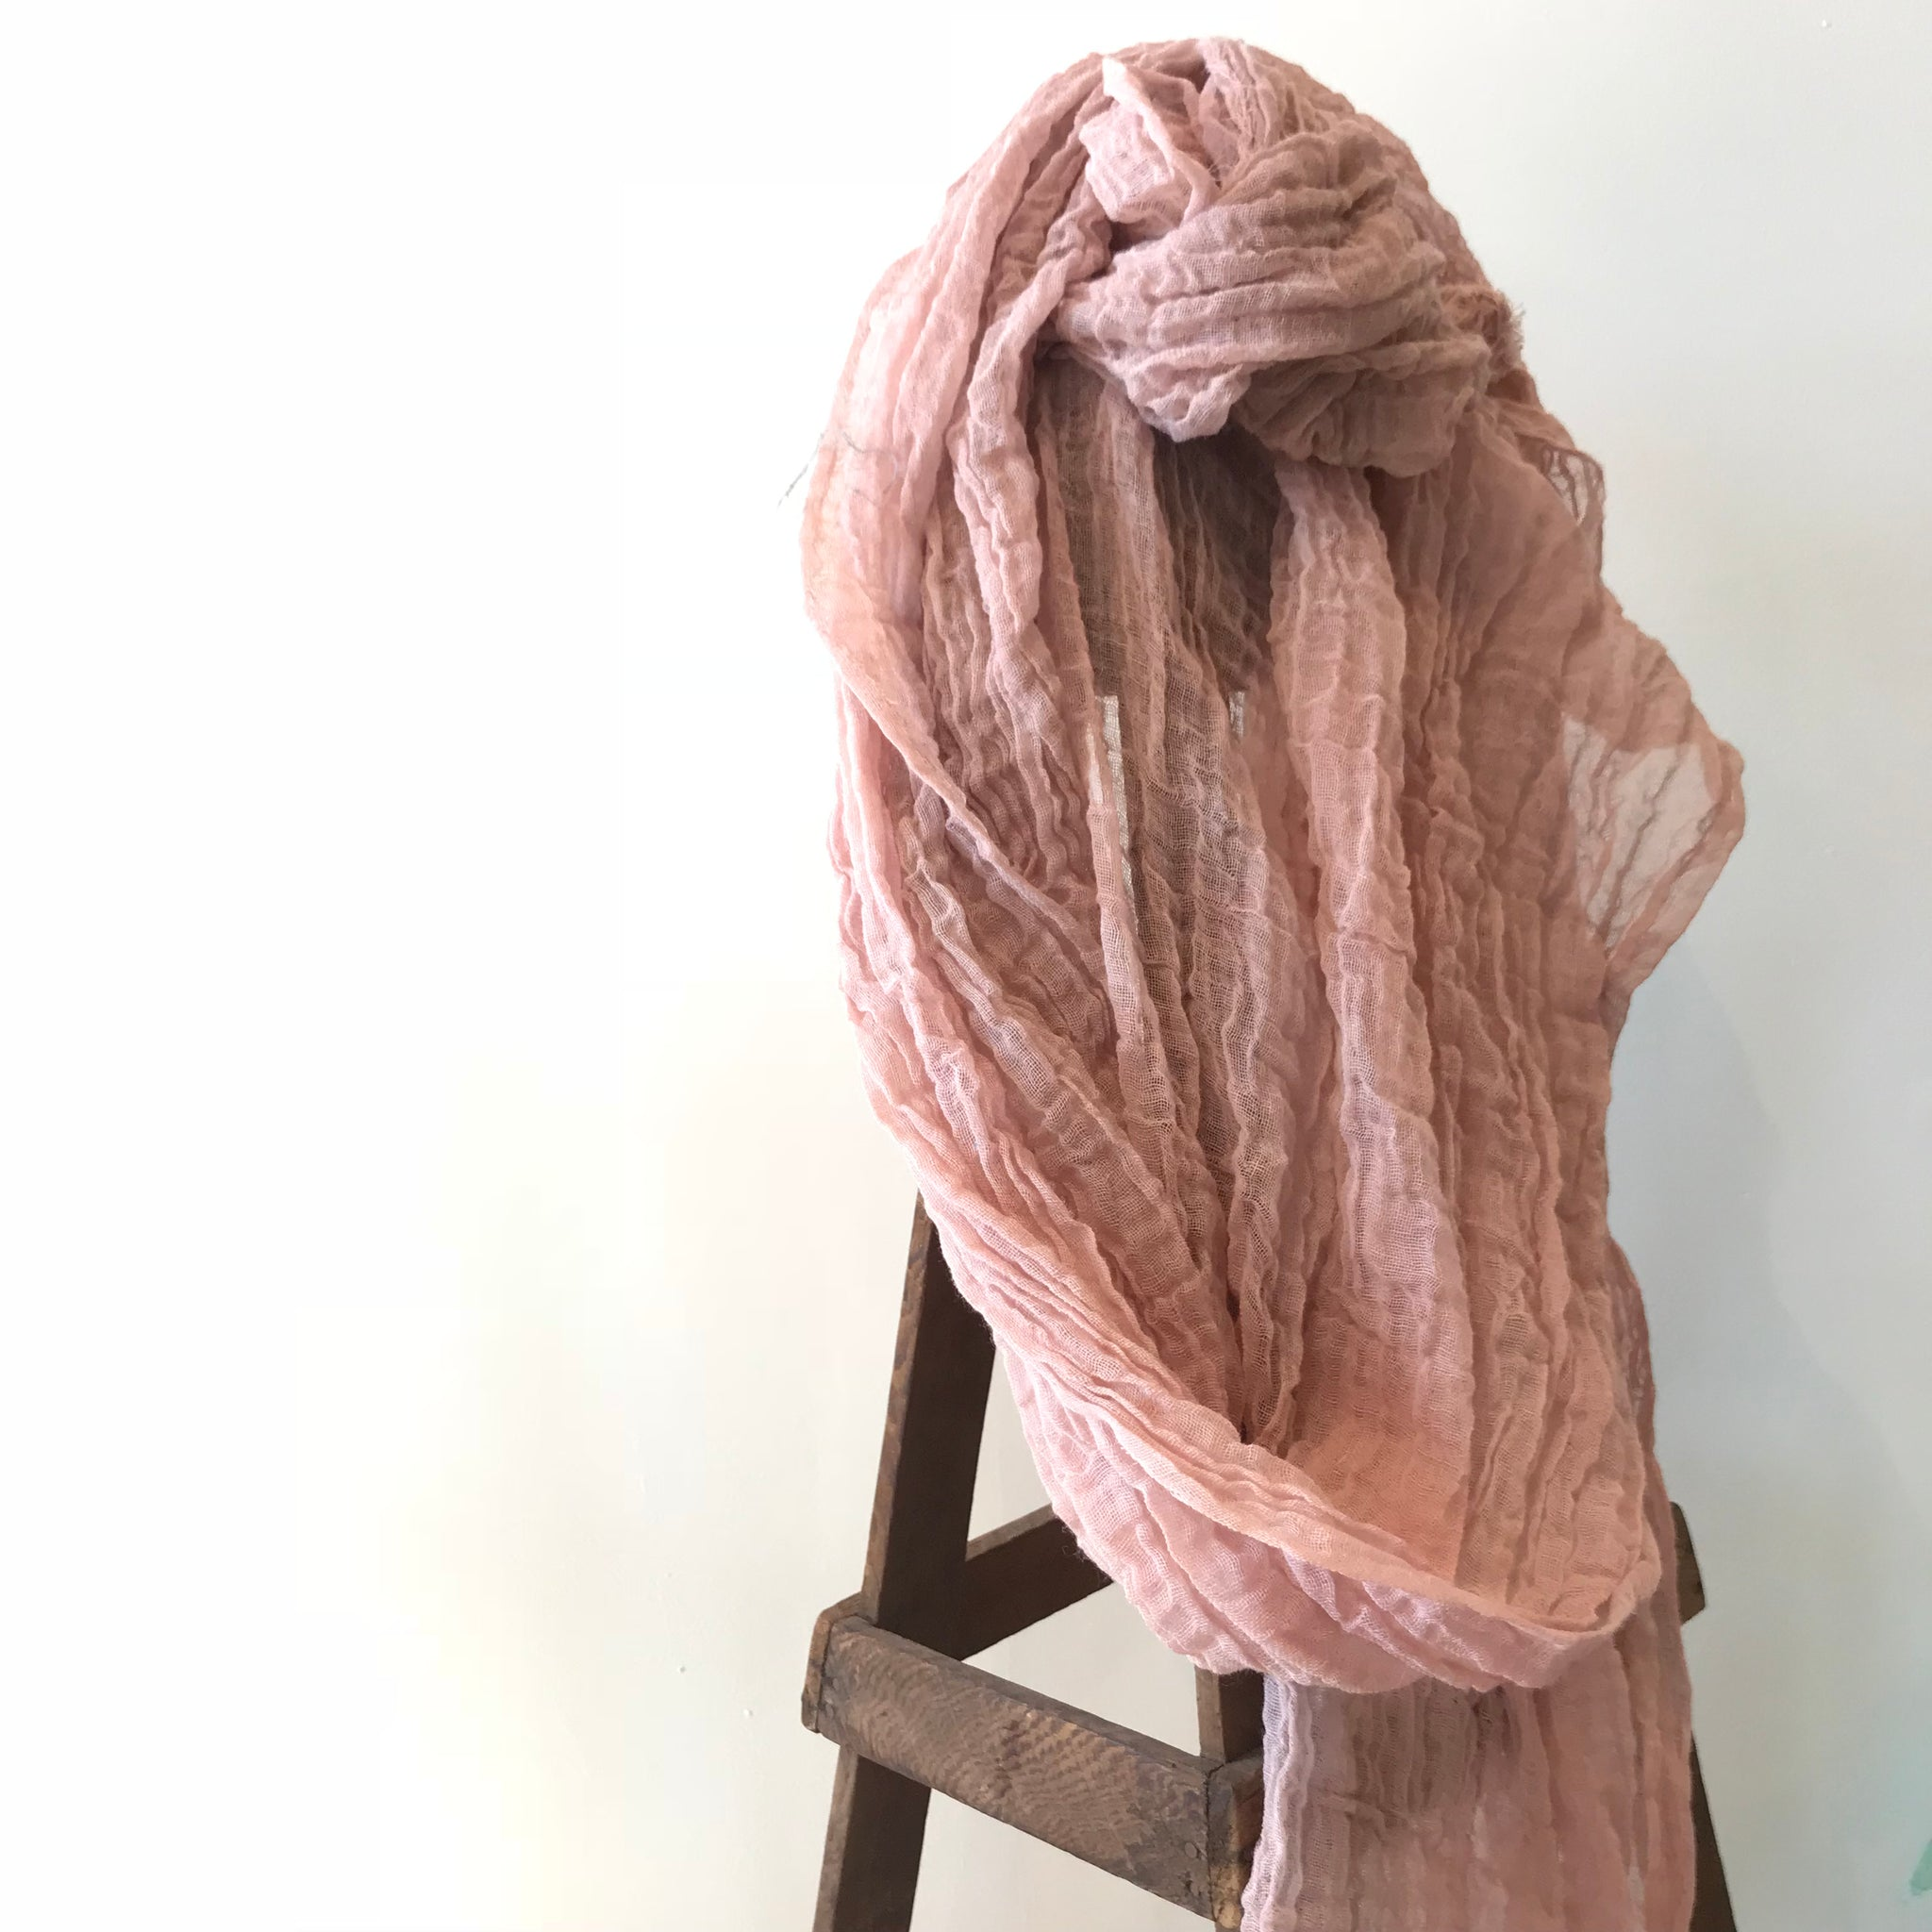 Cotton Scarf in Pink Clay by Scarfshop - Upstate MN